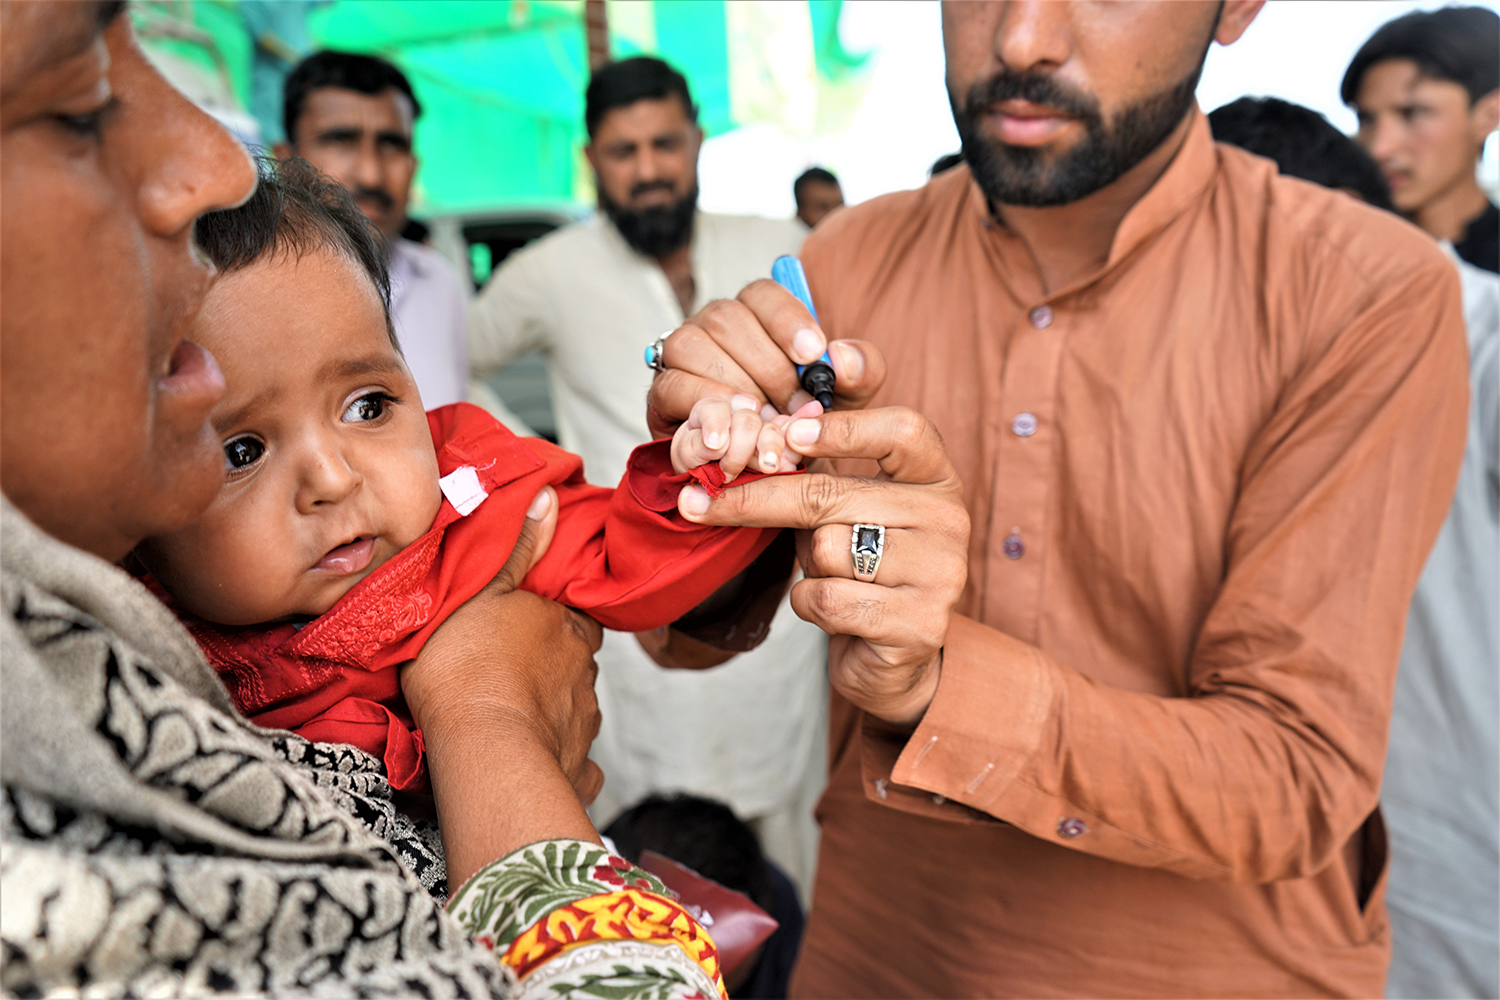 A child has his finger marked to indicate he has been vaccinated after receiving oral polio drops in Rawalpindi, Pakistan, on April 23, 2019. SABRINA TOPPA FOR FOREIGN POLICY